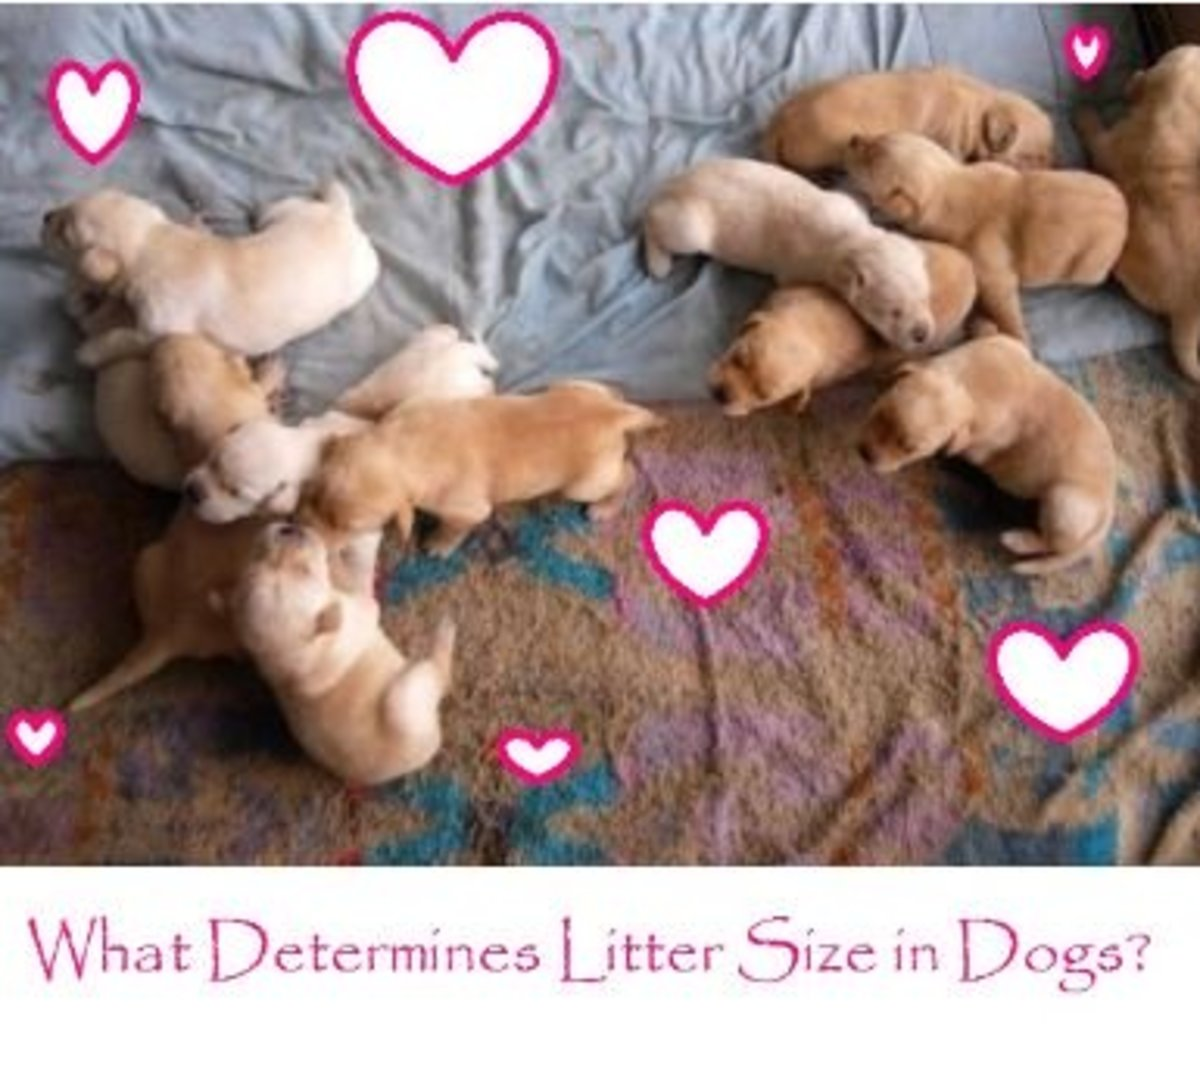 What Determines Litter Size in Dogs?